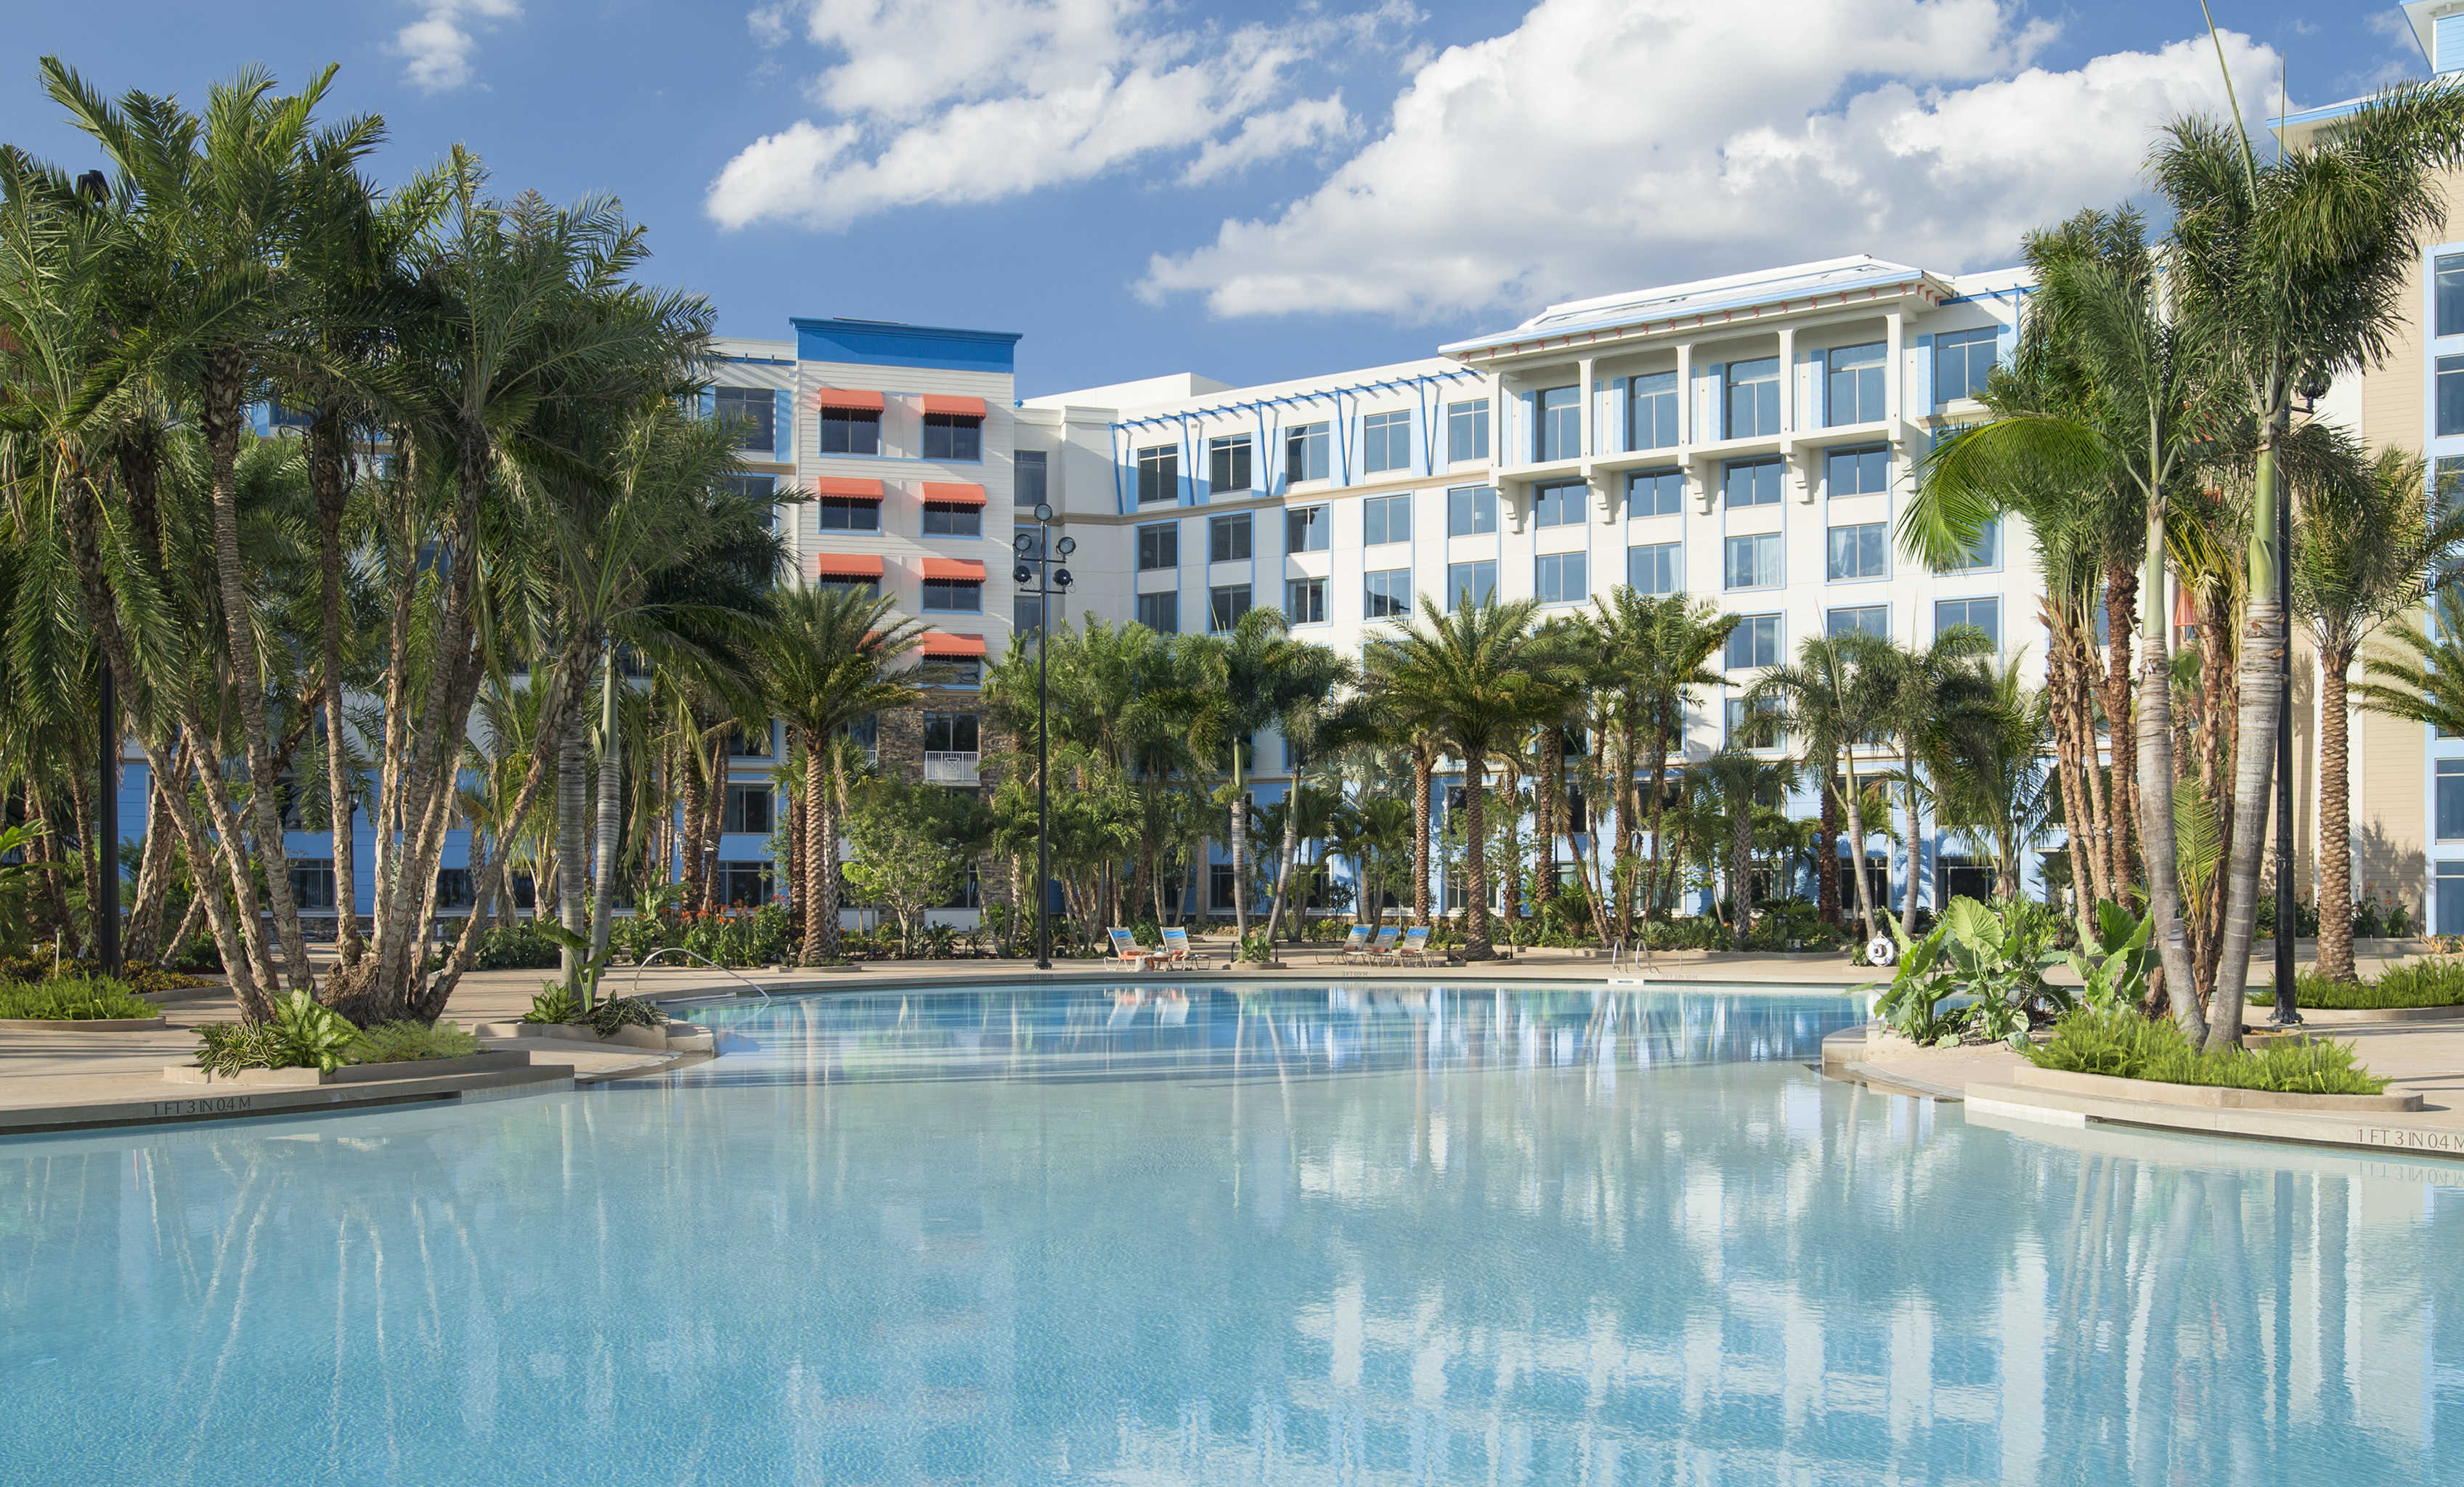 Universal s sixth hotel everything we know for Hotels universal orlando